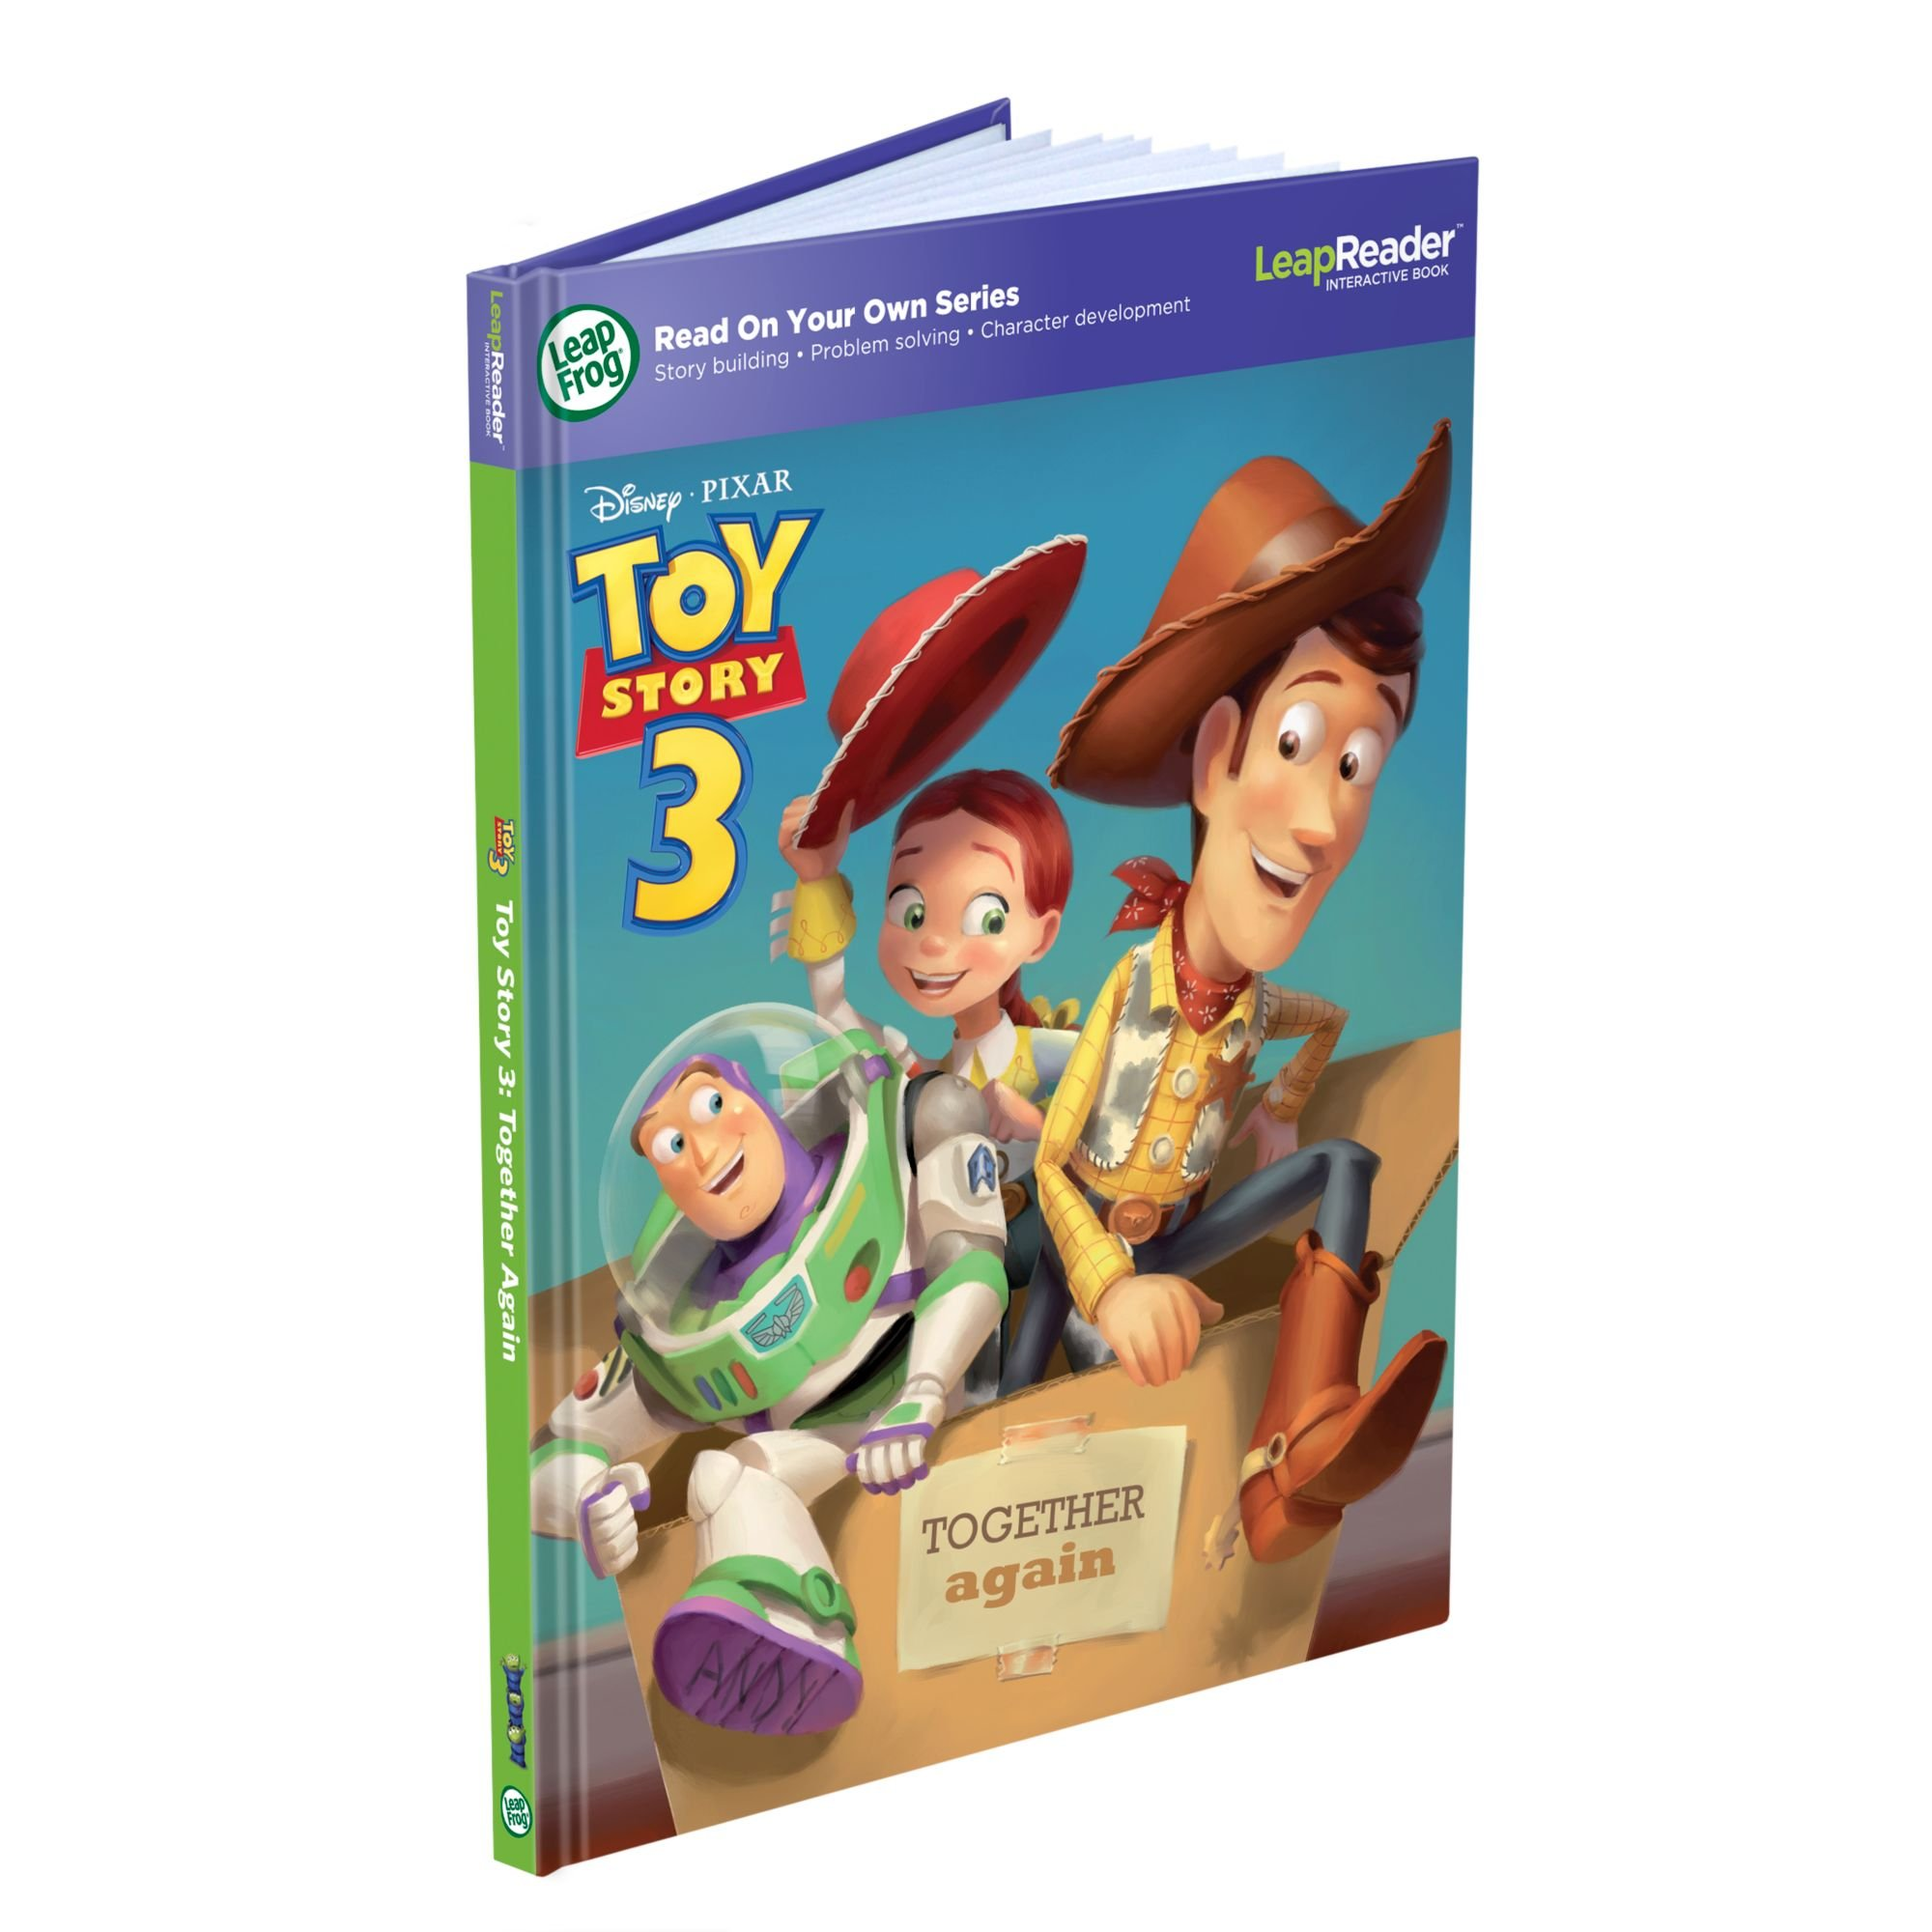 LeapFrog LeapReader Book: Disney Pixar Toy Story 3: Together Again (works with Tag) Packaging May Vary by LeapFrog (Image #1)